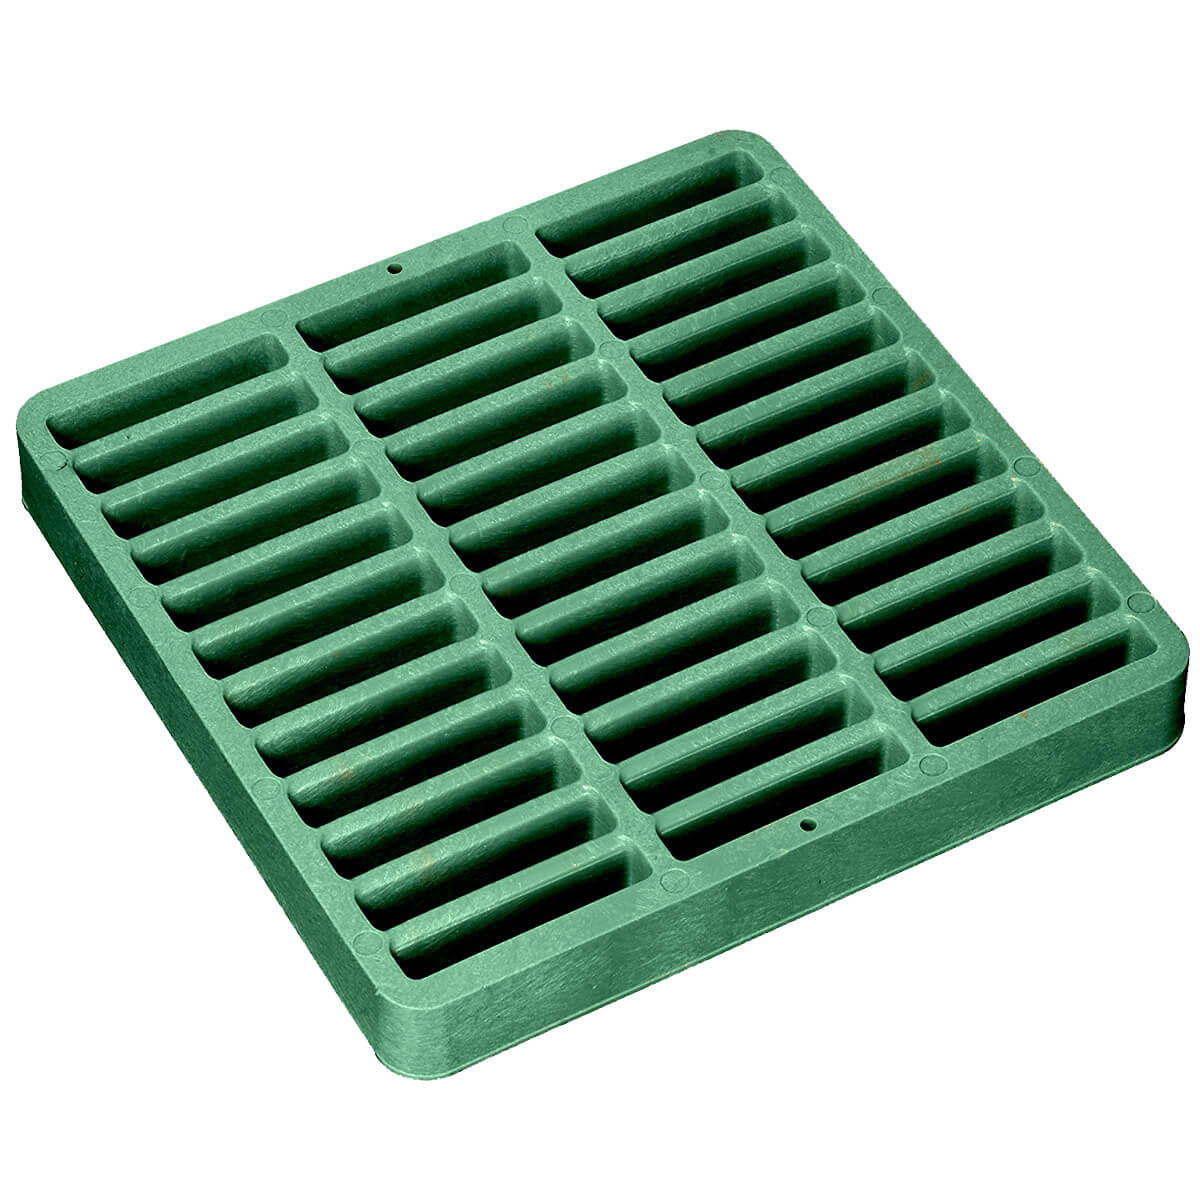 nsd catch basin slotted grate green